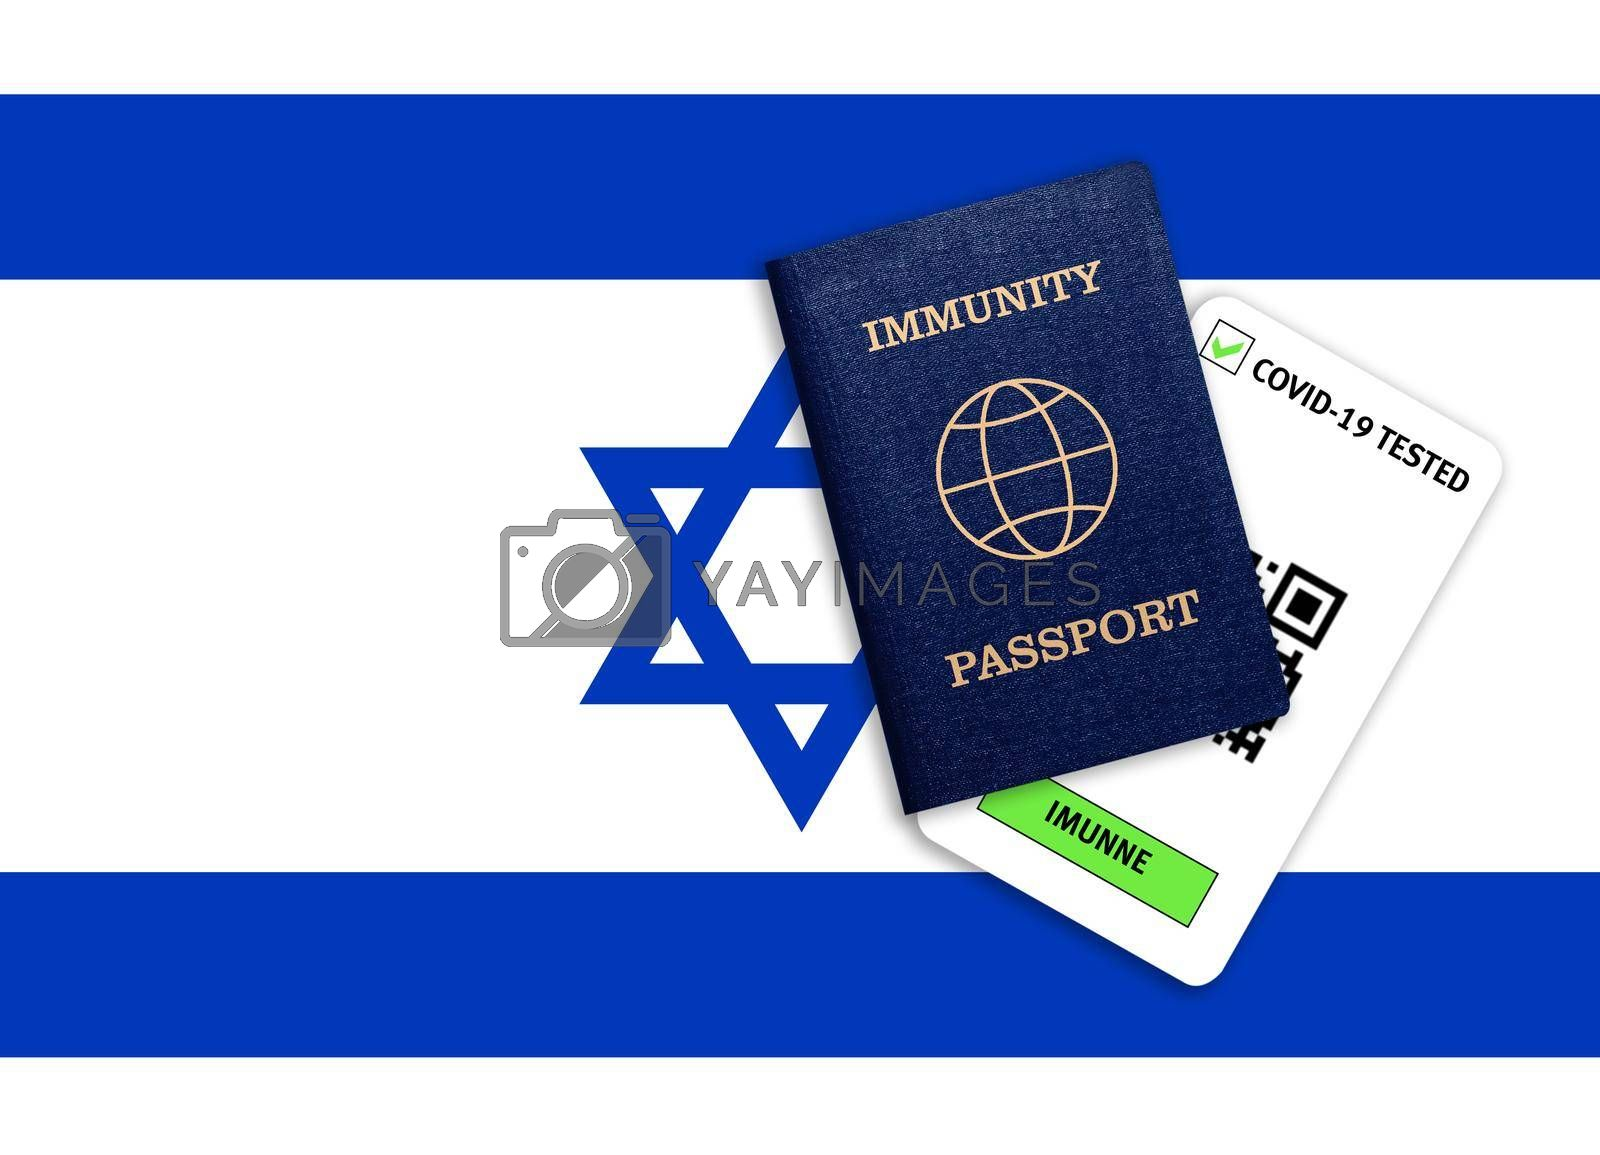 Concept of Immunity passport, certificate for traveling after pandemic for people who have had coronavirus or made vaccine and test result for COVID-19 on flag of Israel